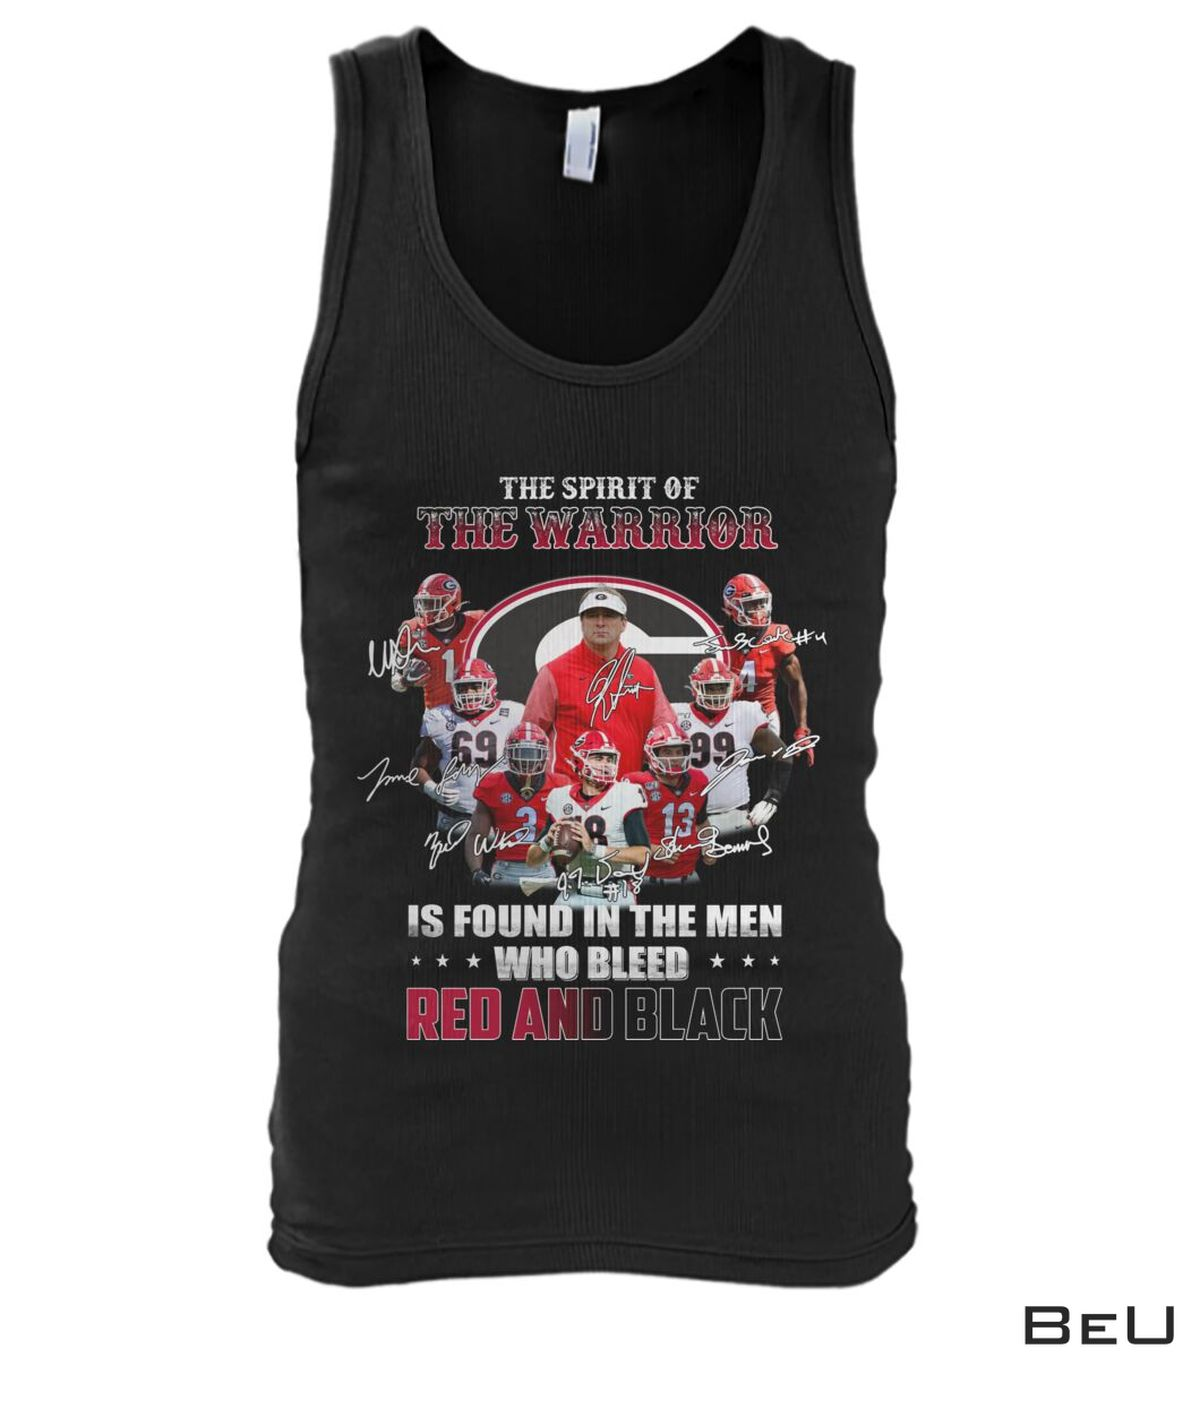 New The Spirit Of The Warrior Is Found In The Men Who Bleed Red And Black Shirt